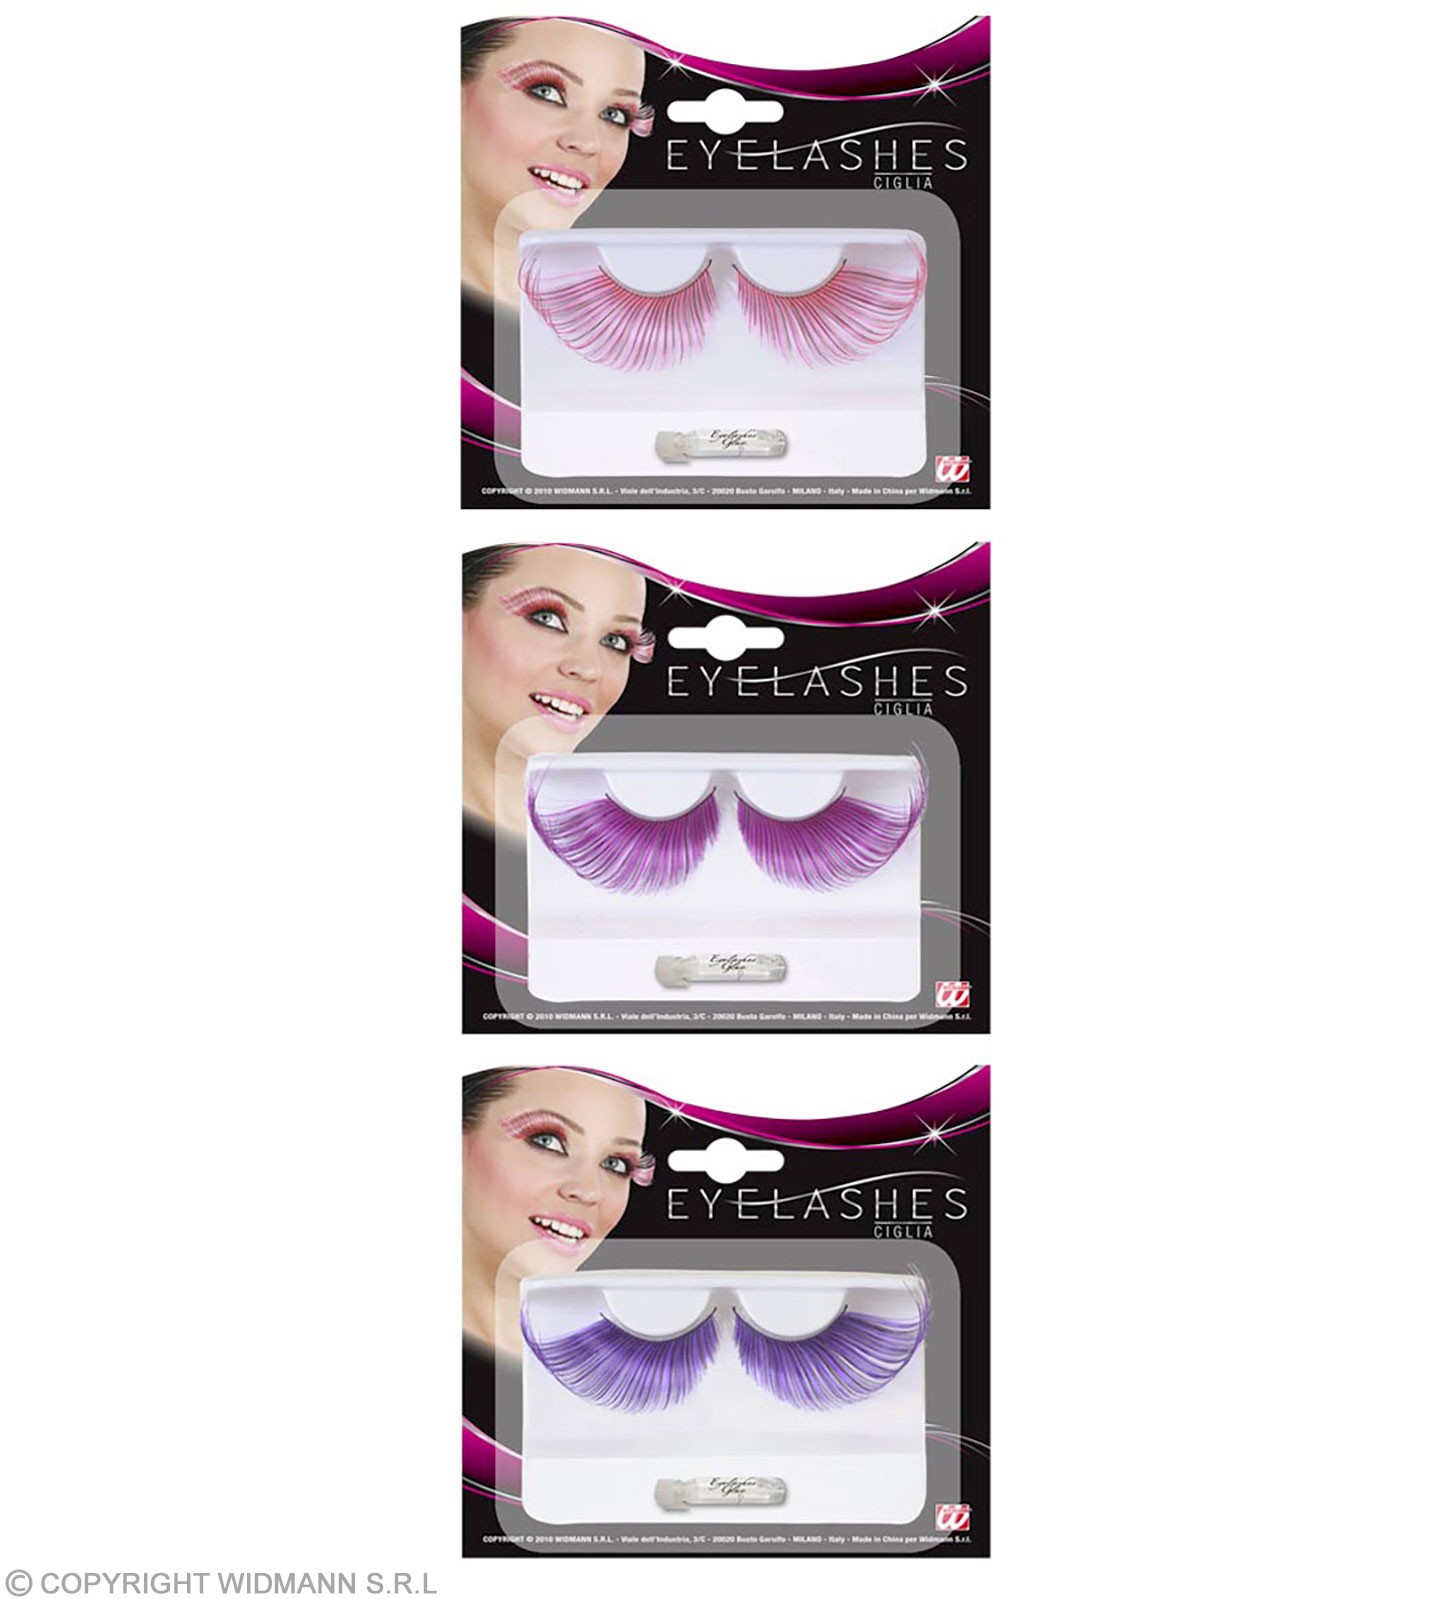 Eyelashes Extralong Meched Color - Fancy Dress